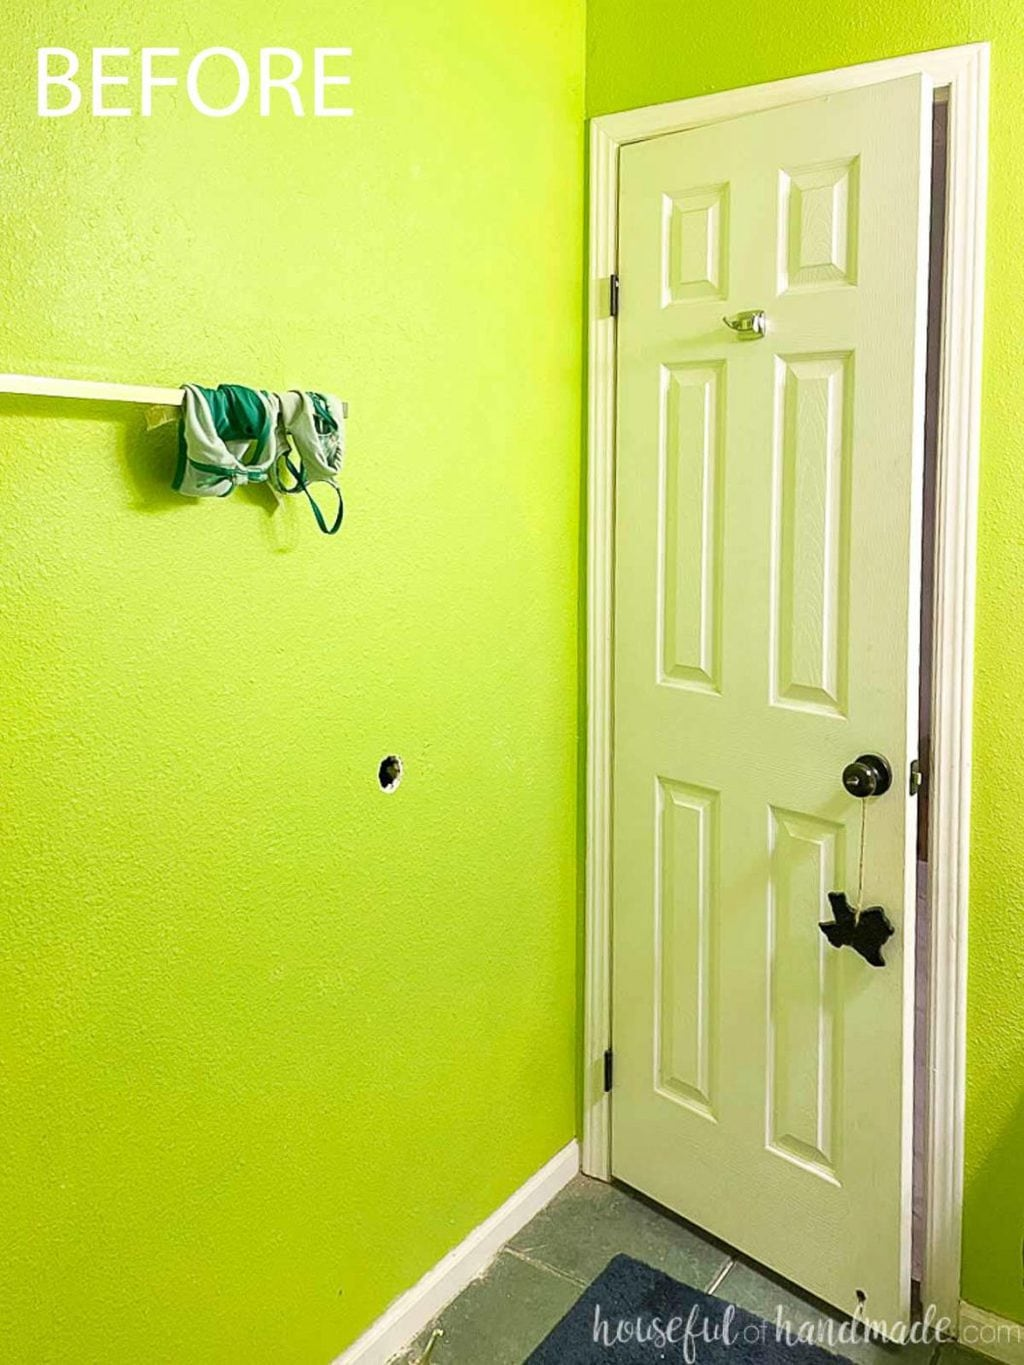 Before photo of the bathroom with electric green walls looking at the wall behind the white 6 panel door.